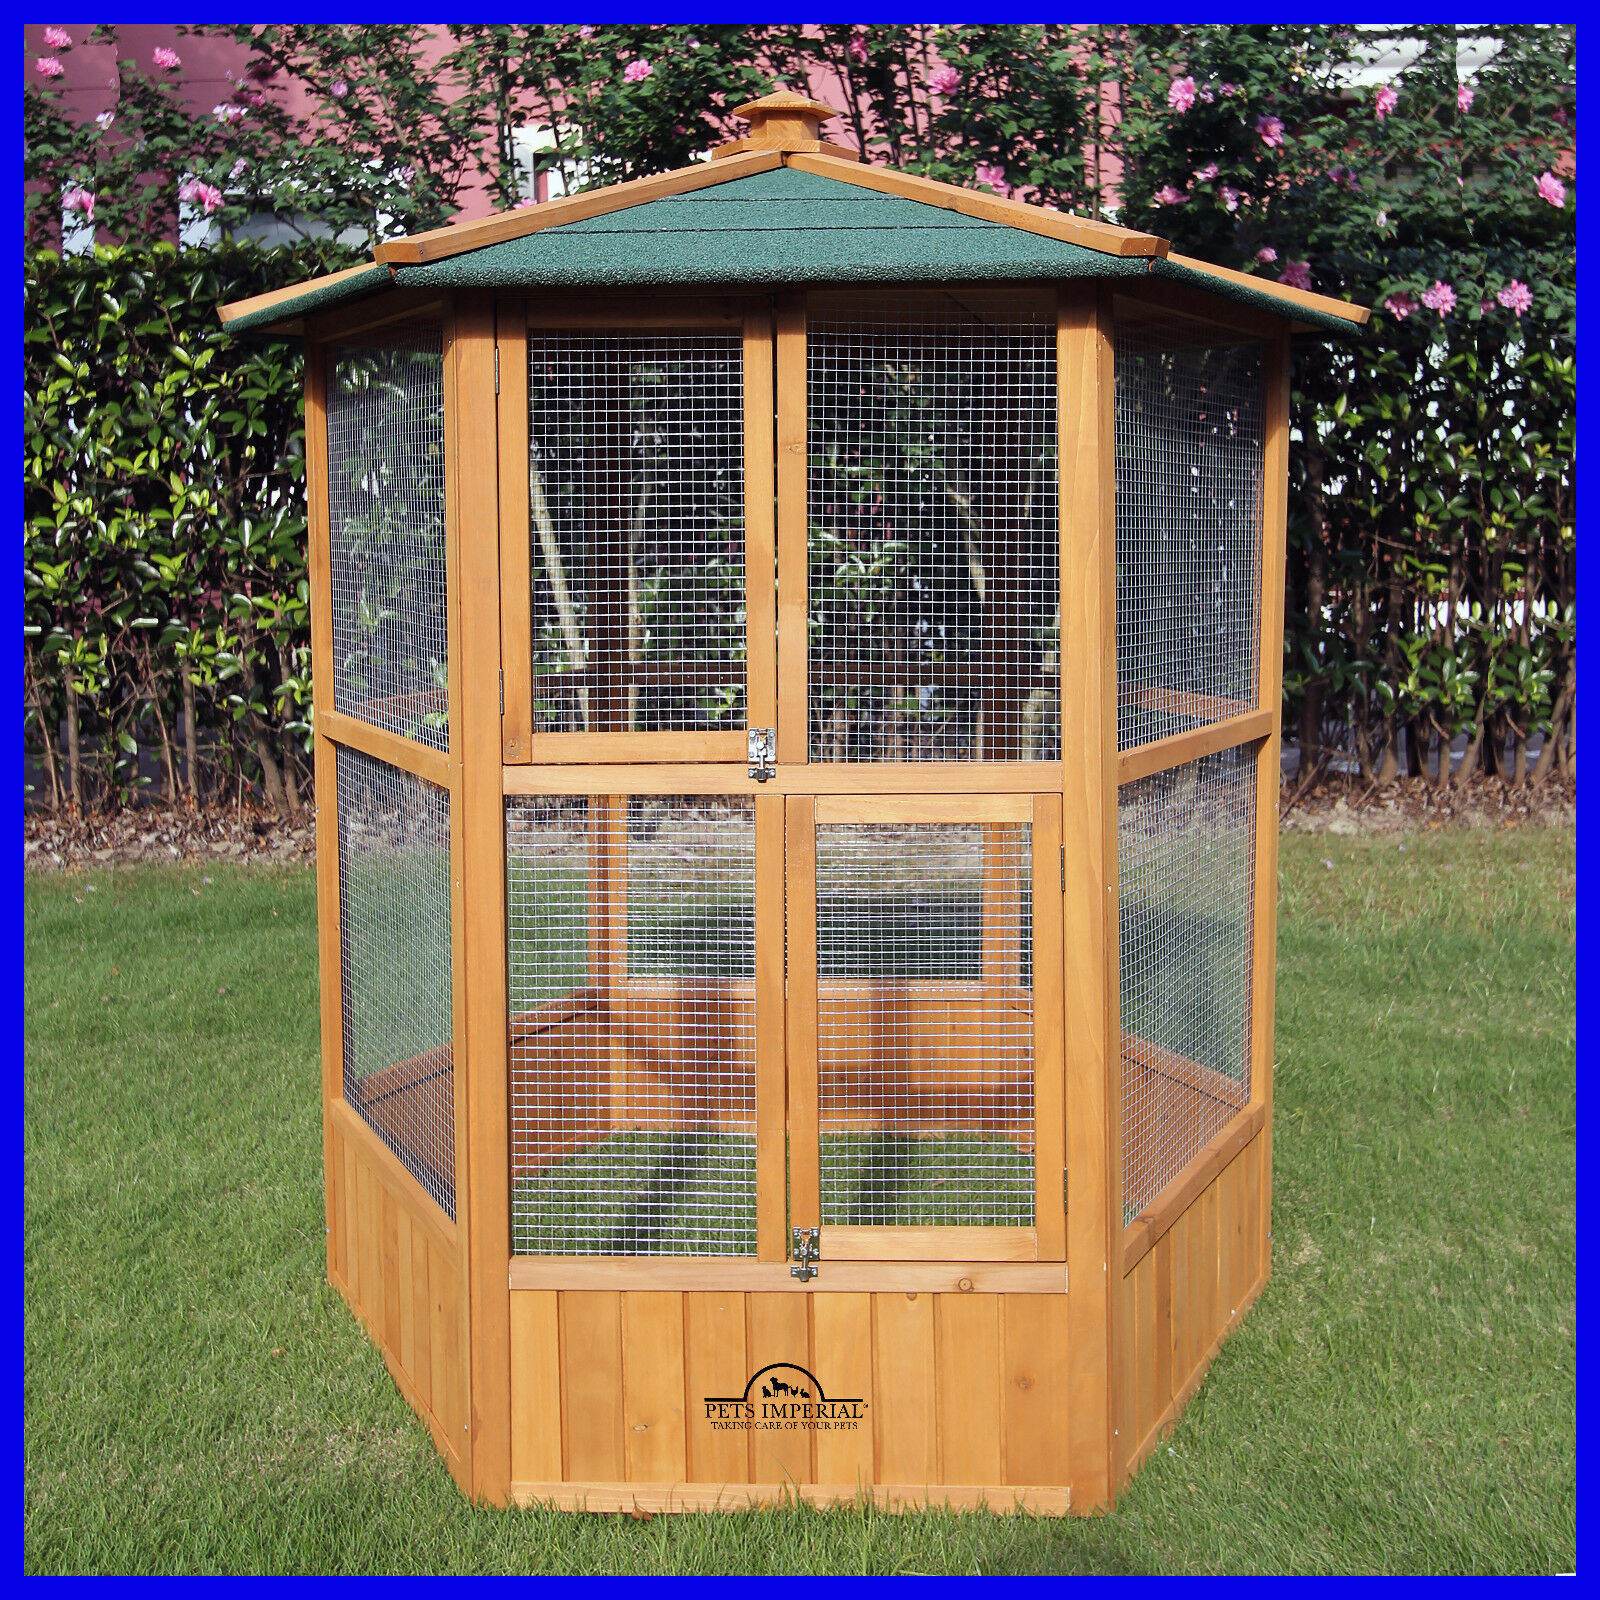 Pets Imperial® Large Wooden Hexagonal Bird Aviary Cage Birds Parred Canary